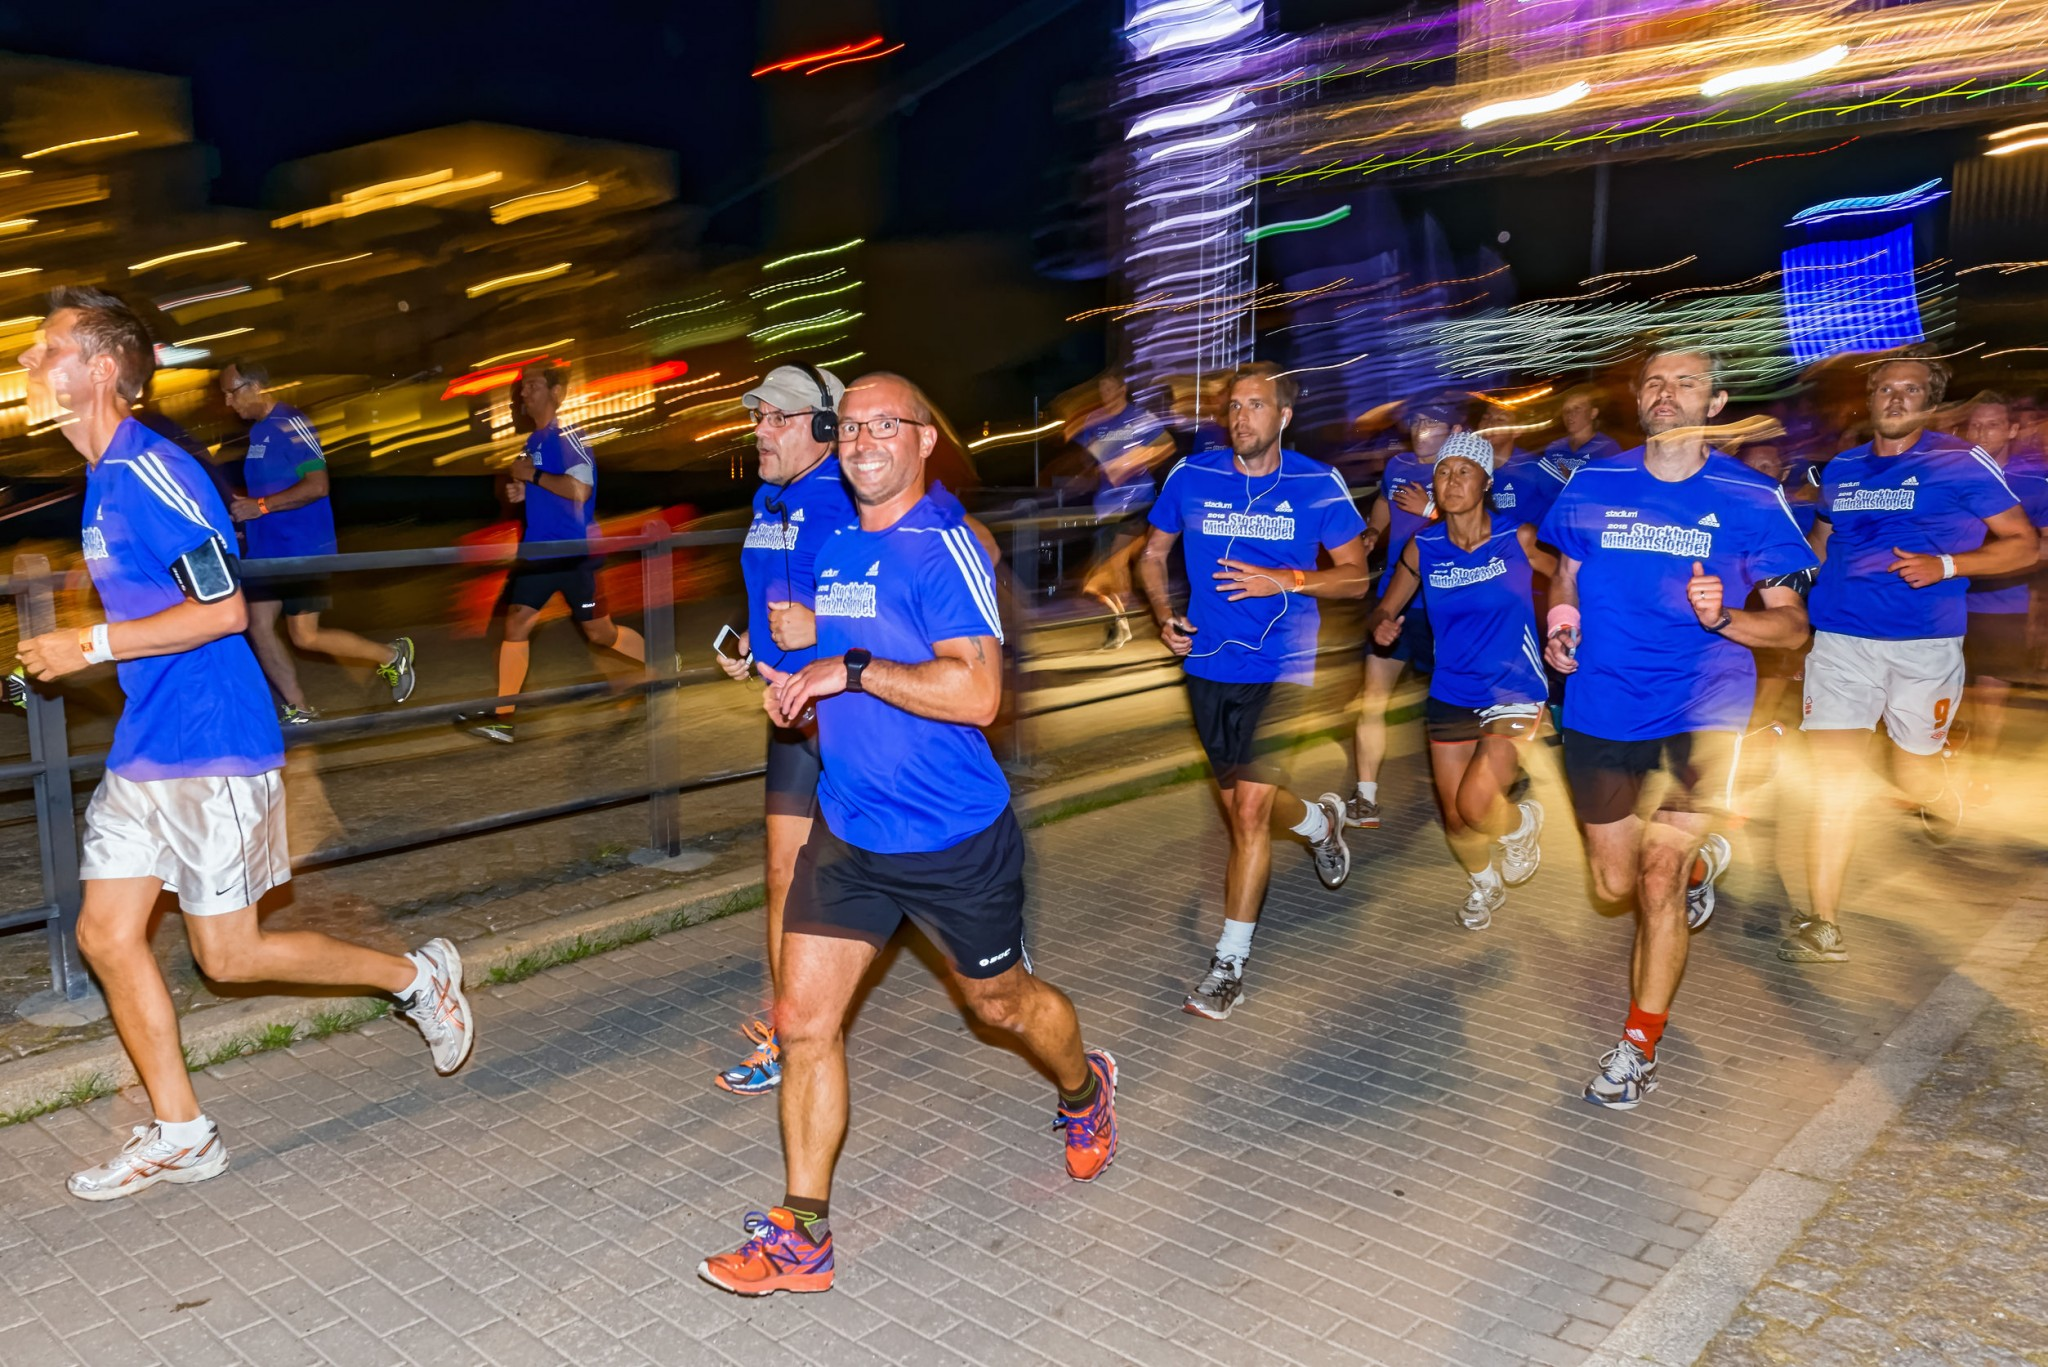 runners-at-night-race